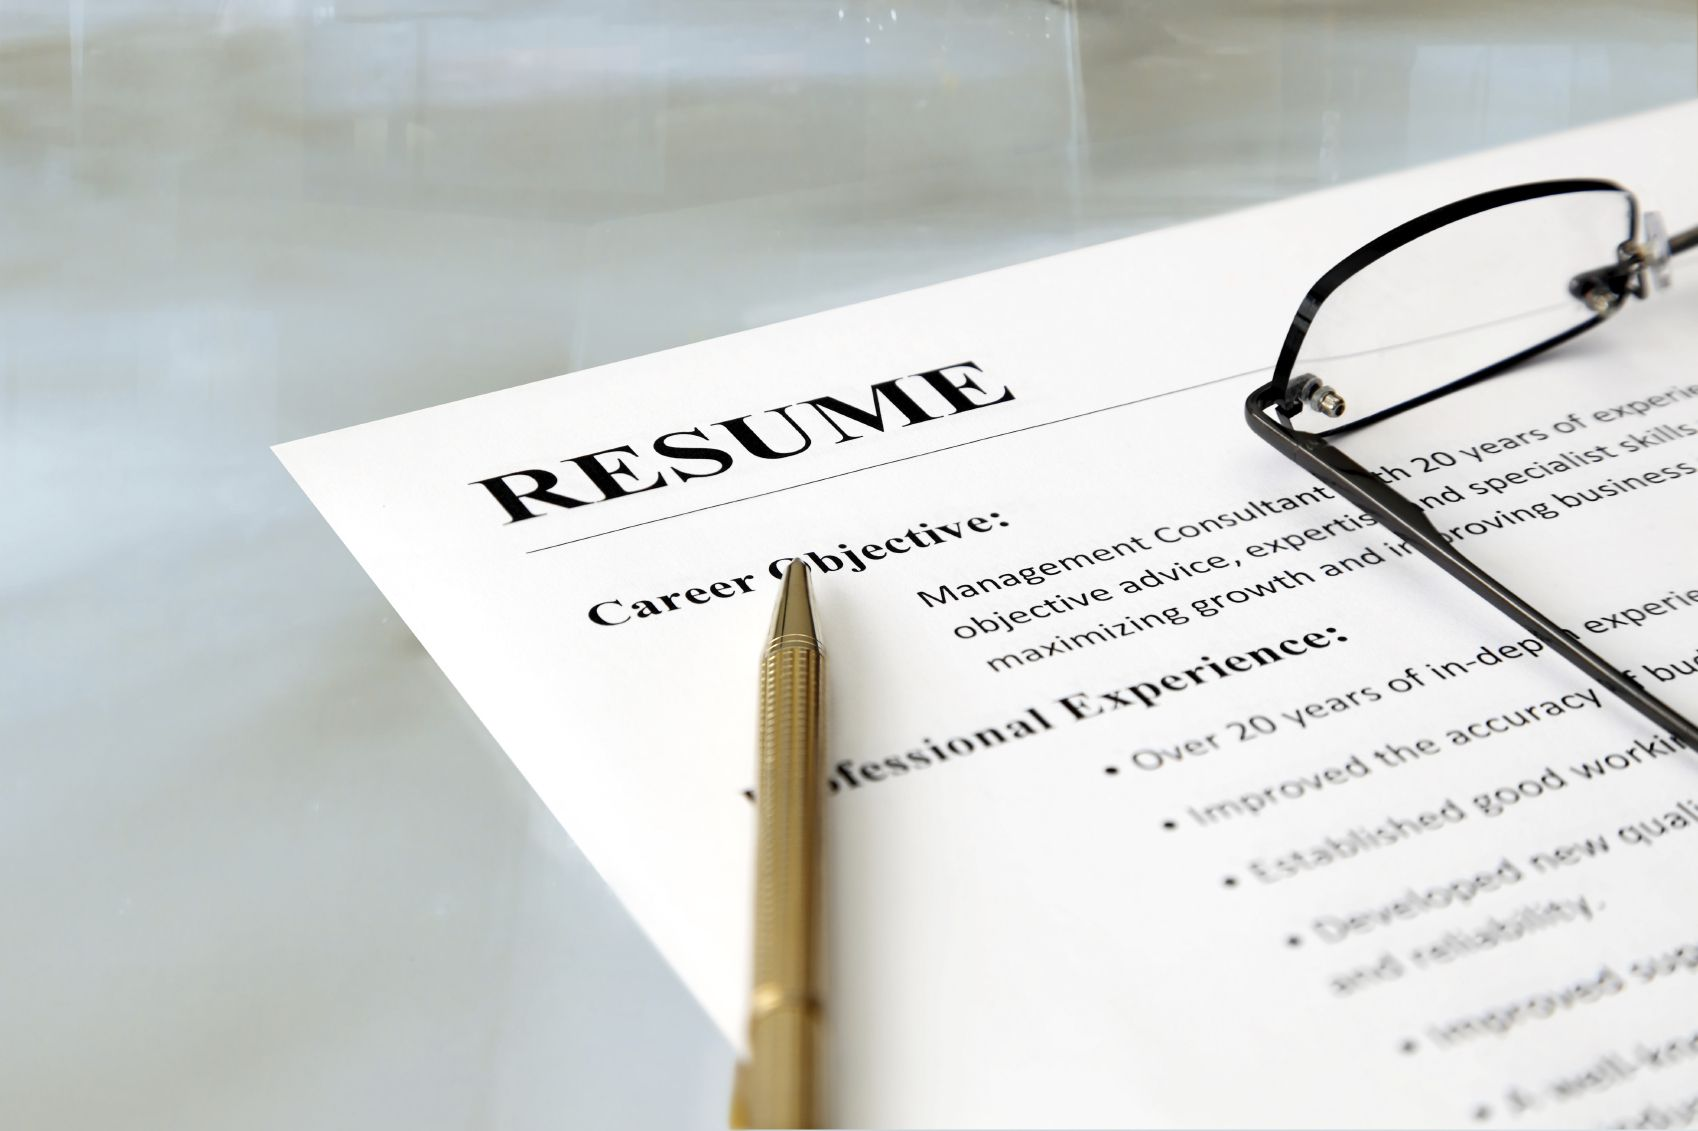 resume objective examples and writing tips career counseling medium packages business Resume Career Counseling And Resume Writing